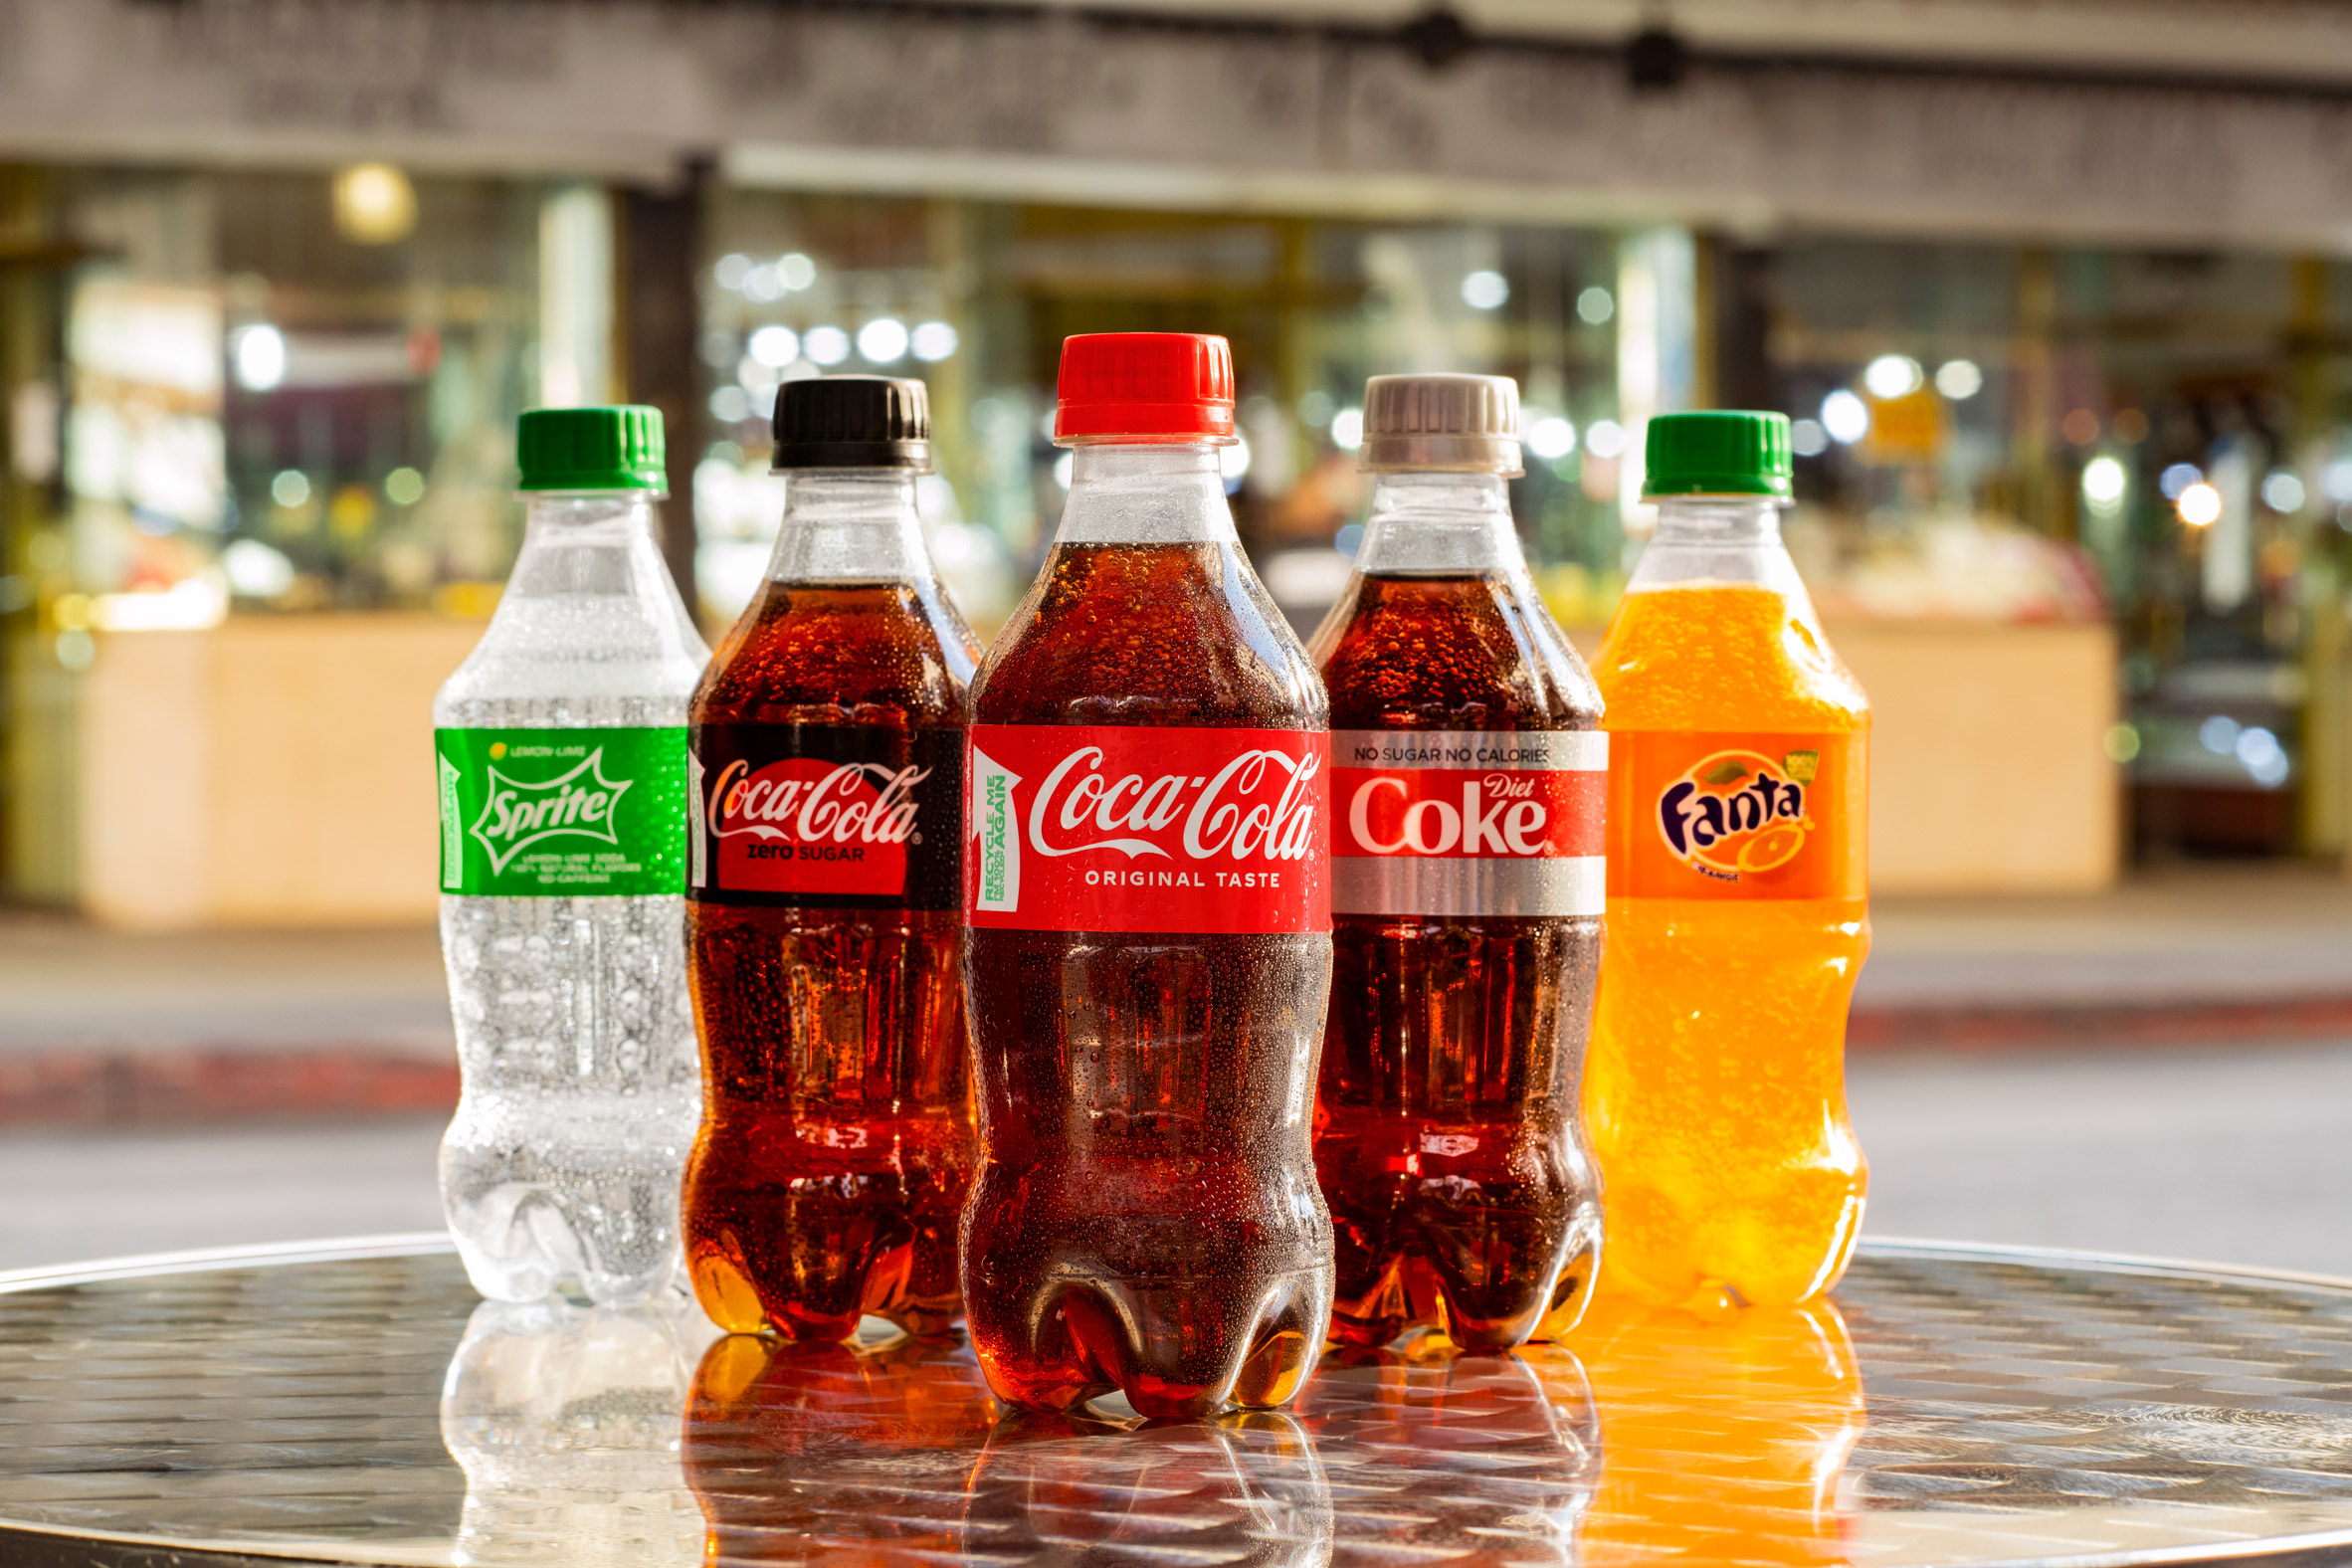 New 12.3 ounce sip-sized rPet bottles for Sprite, Fanta and Coca-Cola